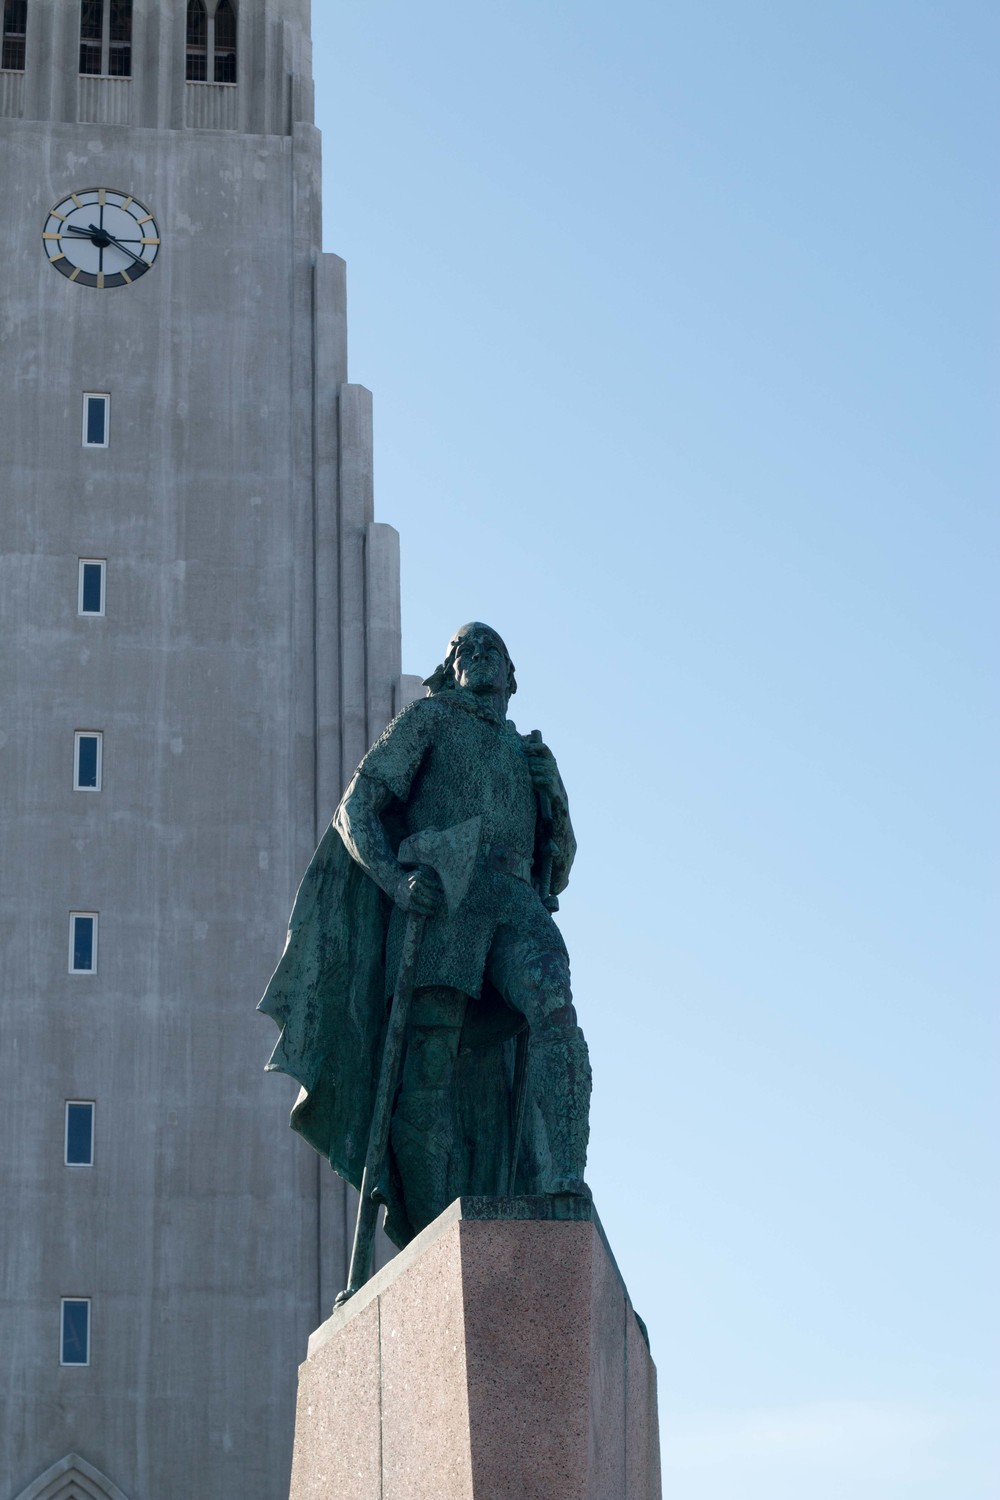 Statue of Lief Erikson outside Hallgrimskirkja with the church tower in the background